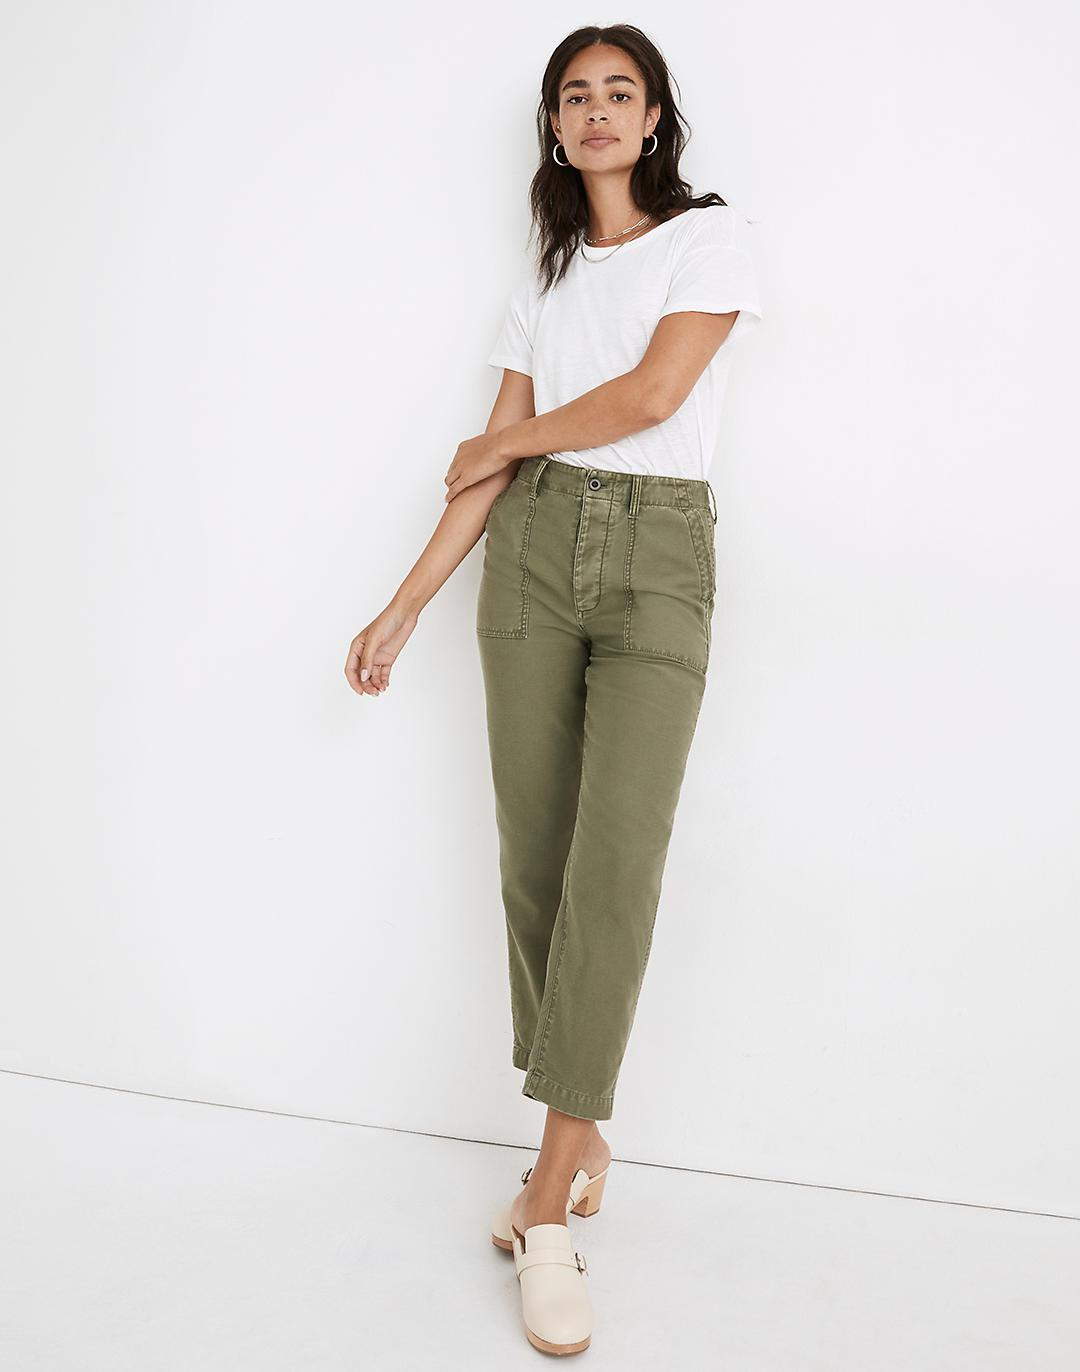 Curvy Griff Tapered Fatigue Pants